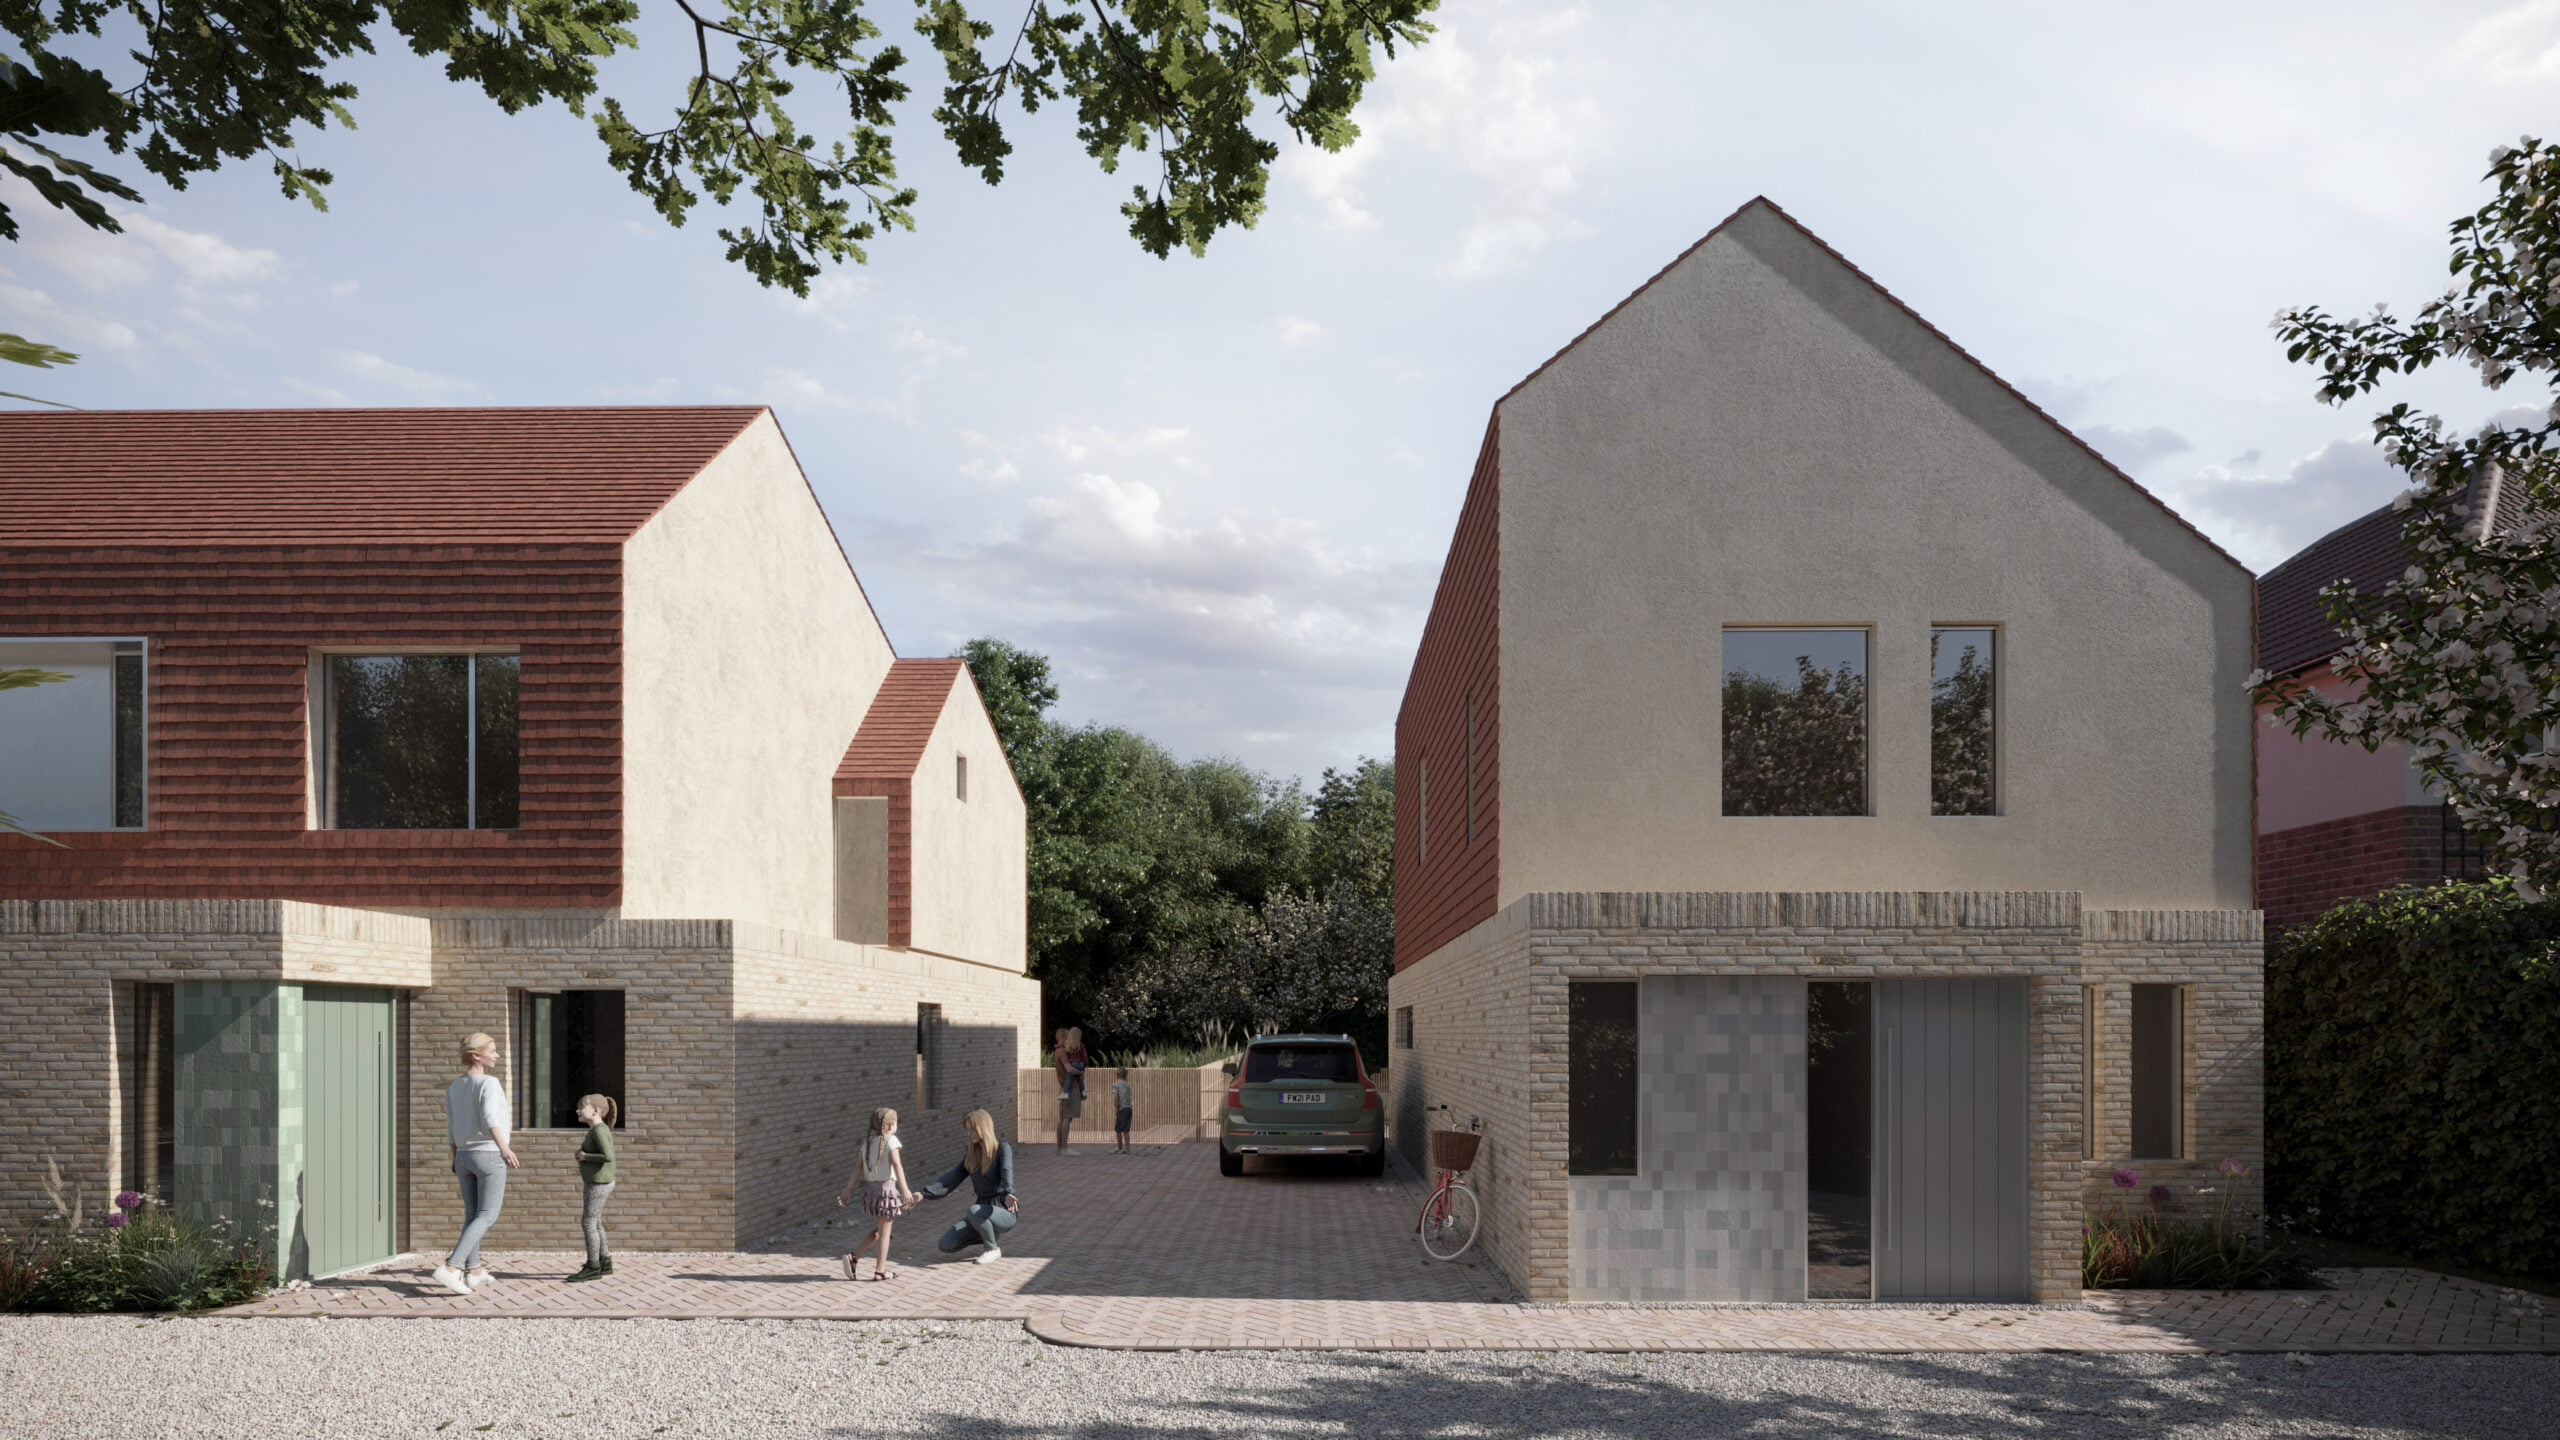 Front view of the sustainable Hampshire Housing development